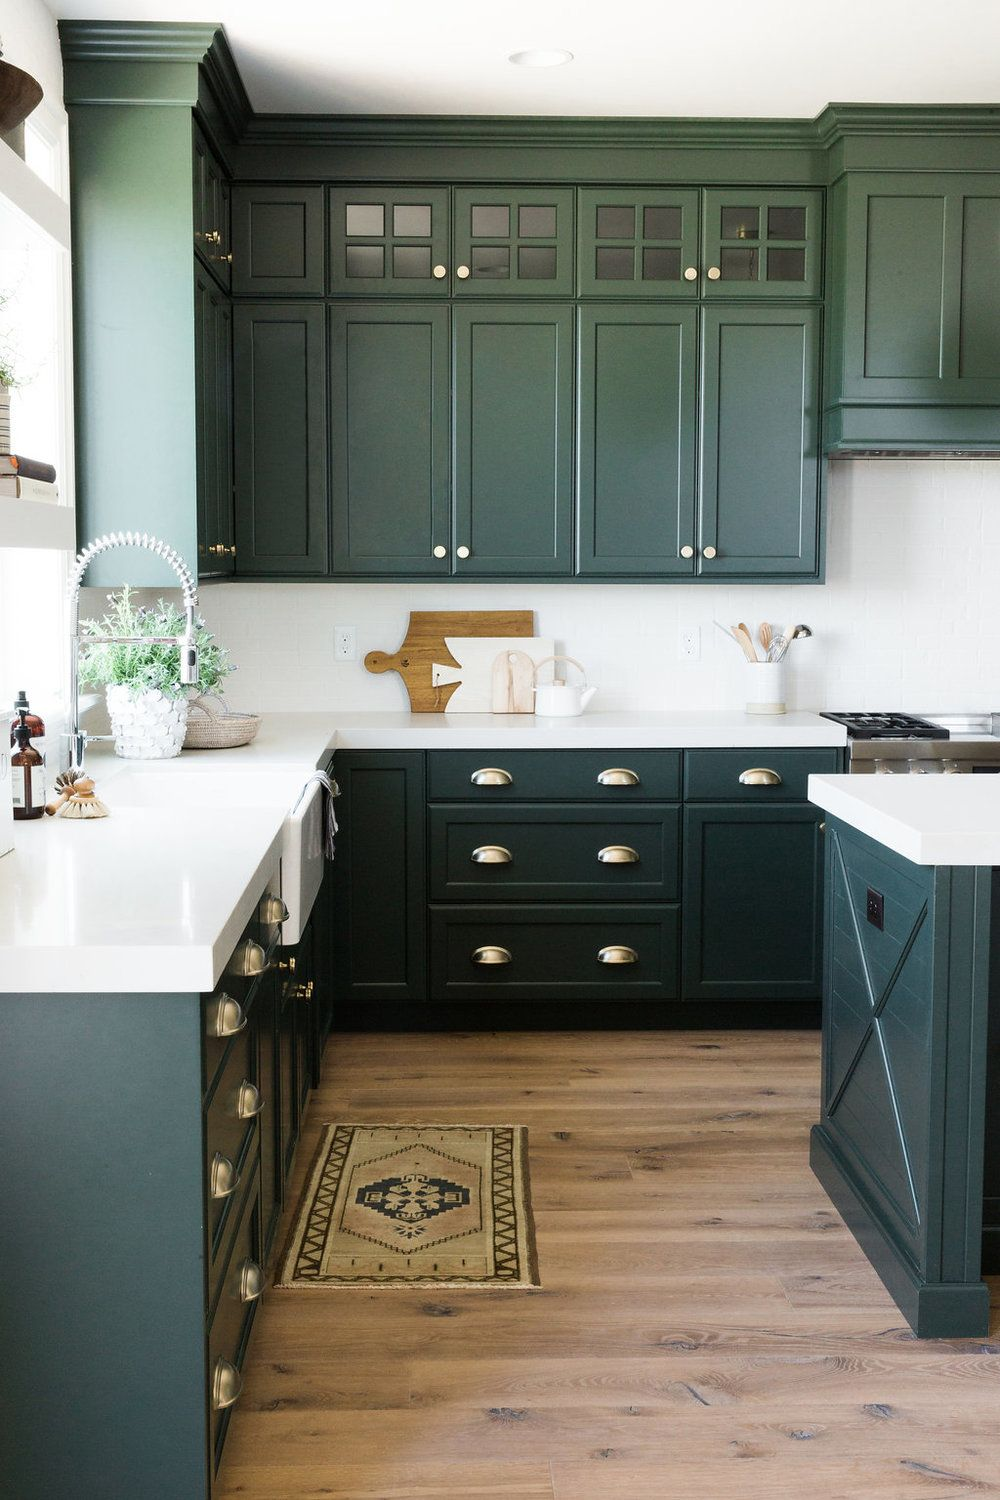 Parade Home Reveal Pt. 1 Green kitchen